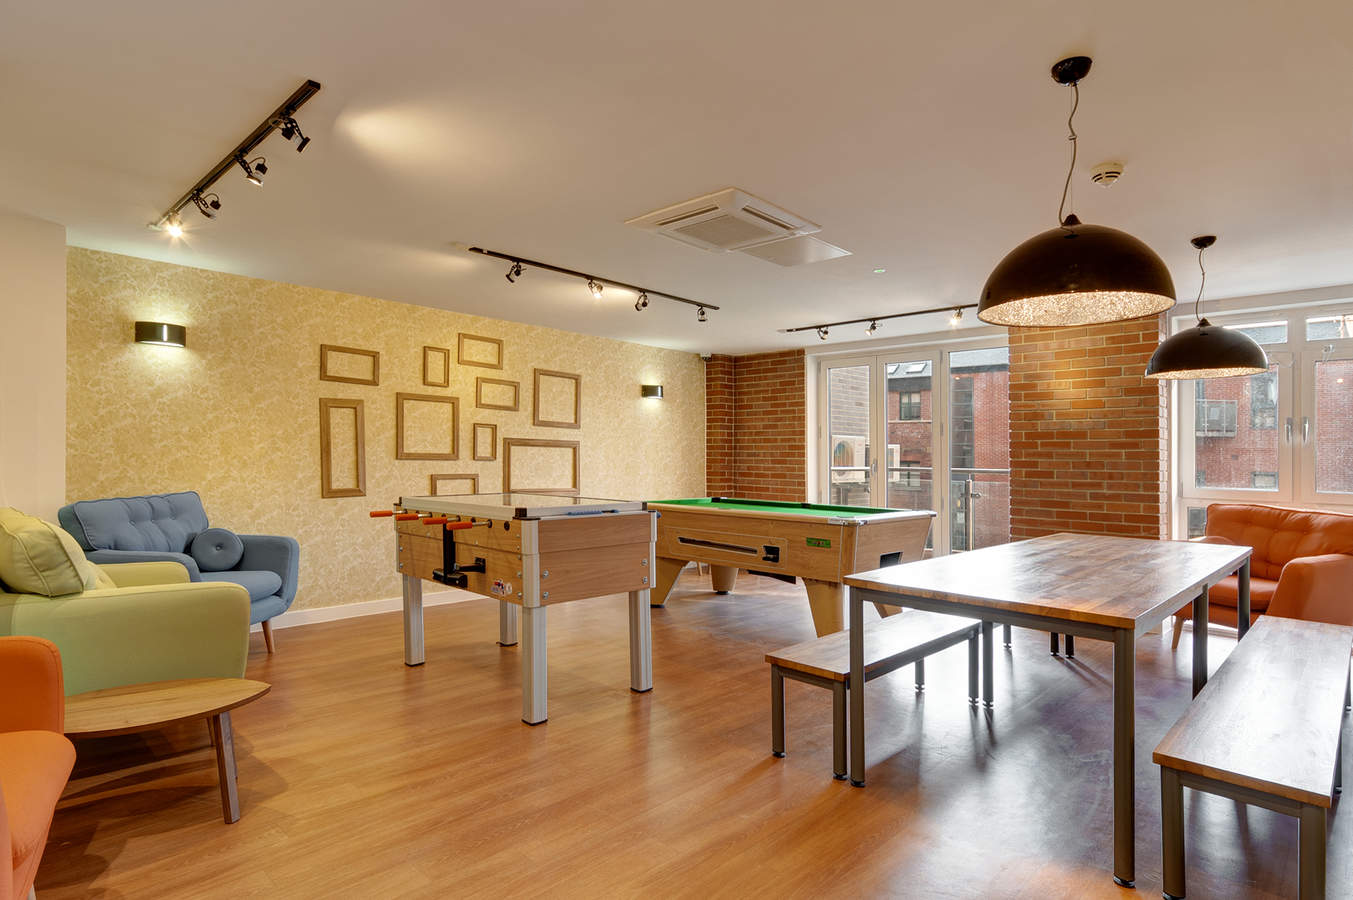 06-fresh-student-living-sheffield-cornerhouse-02-social-space-photo-02_web